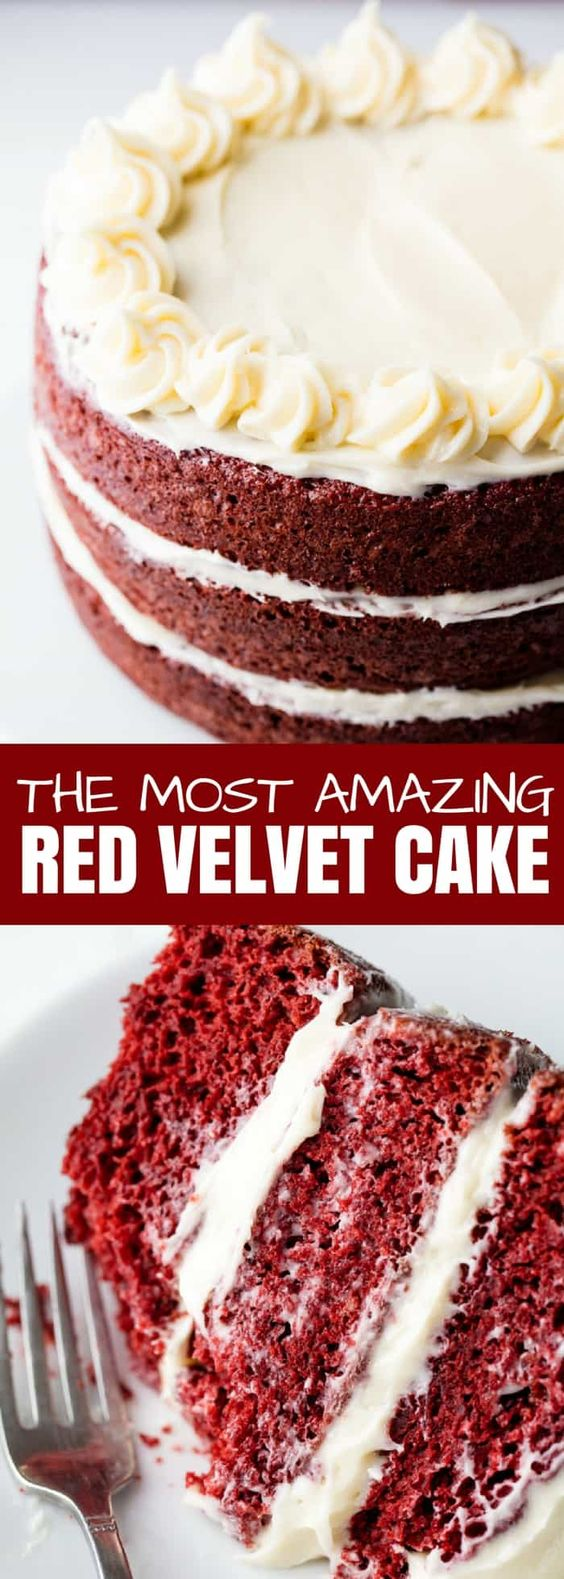 The Most Amazing Red Velvet Cake